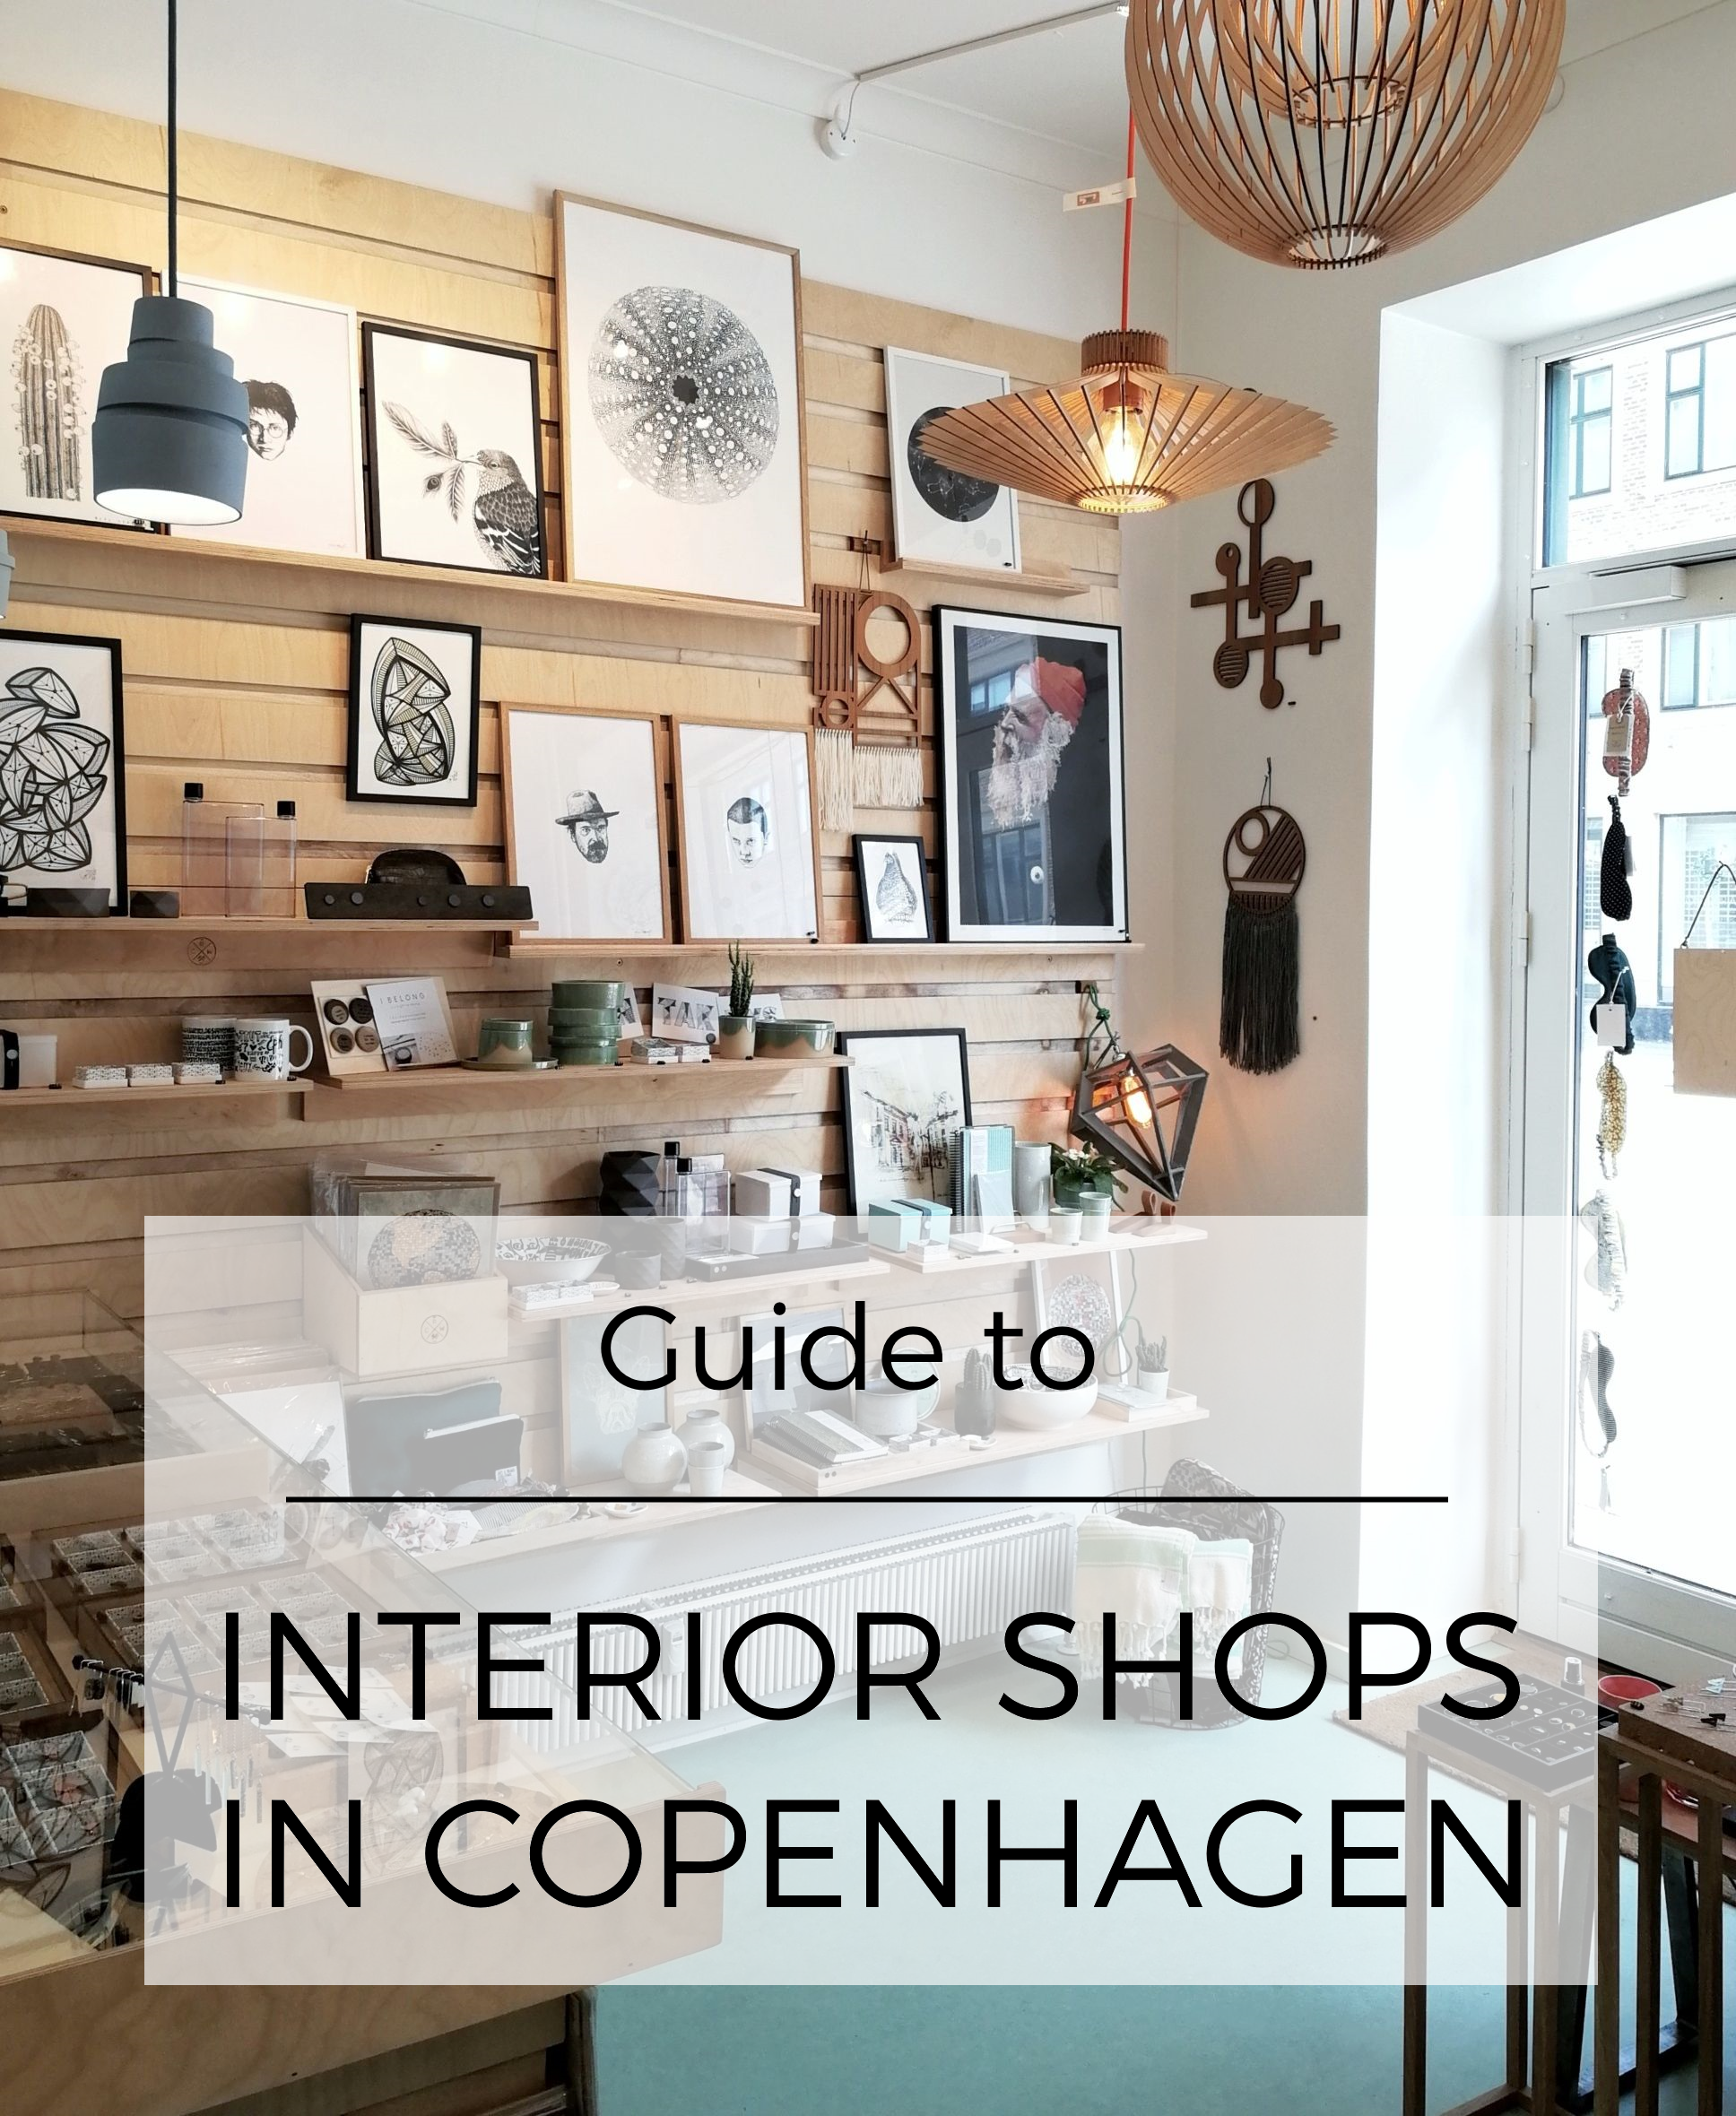 Guide to Interior shops in Copenhagen by Kreavilla.com